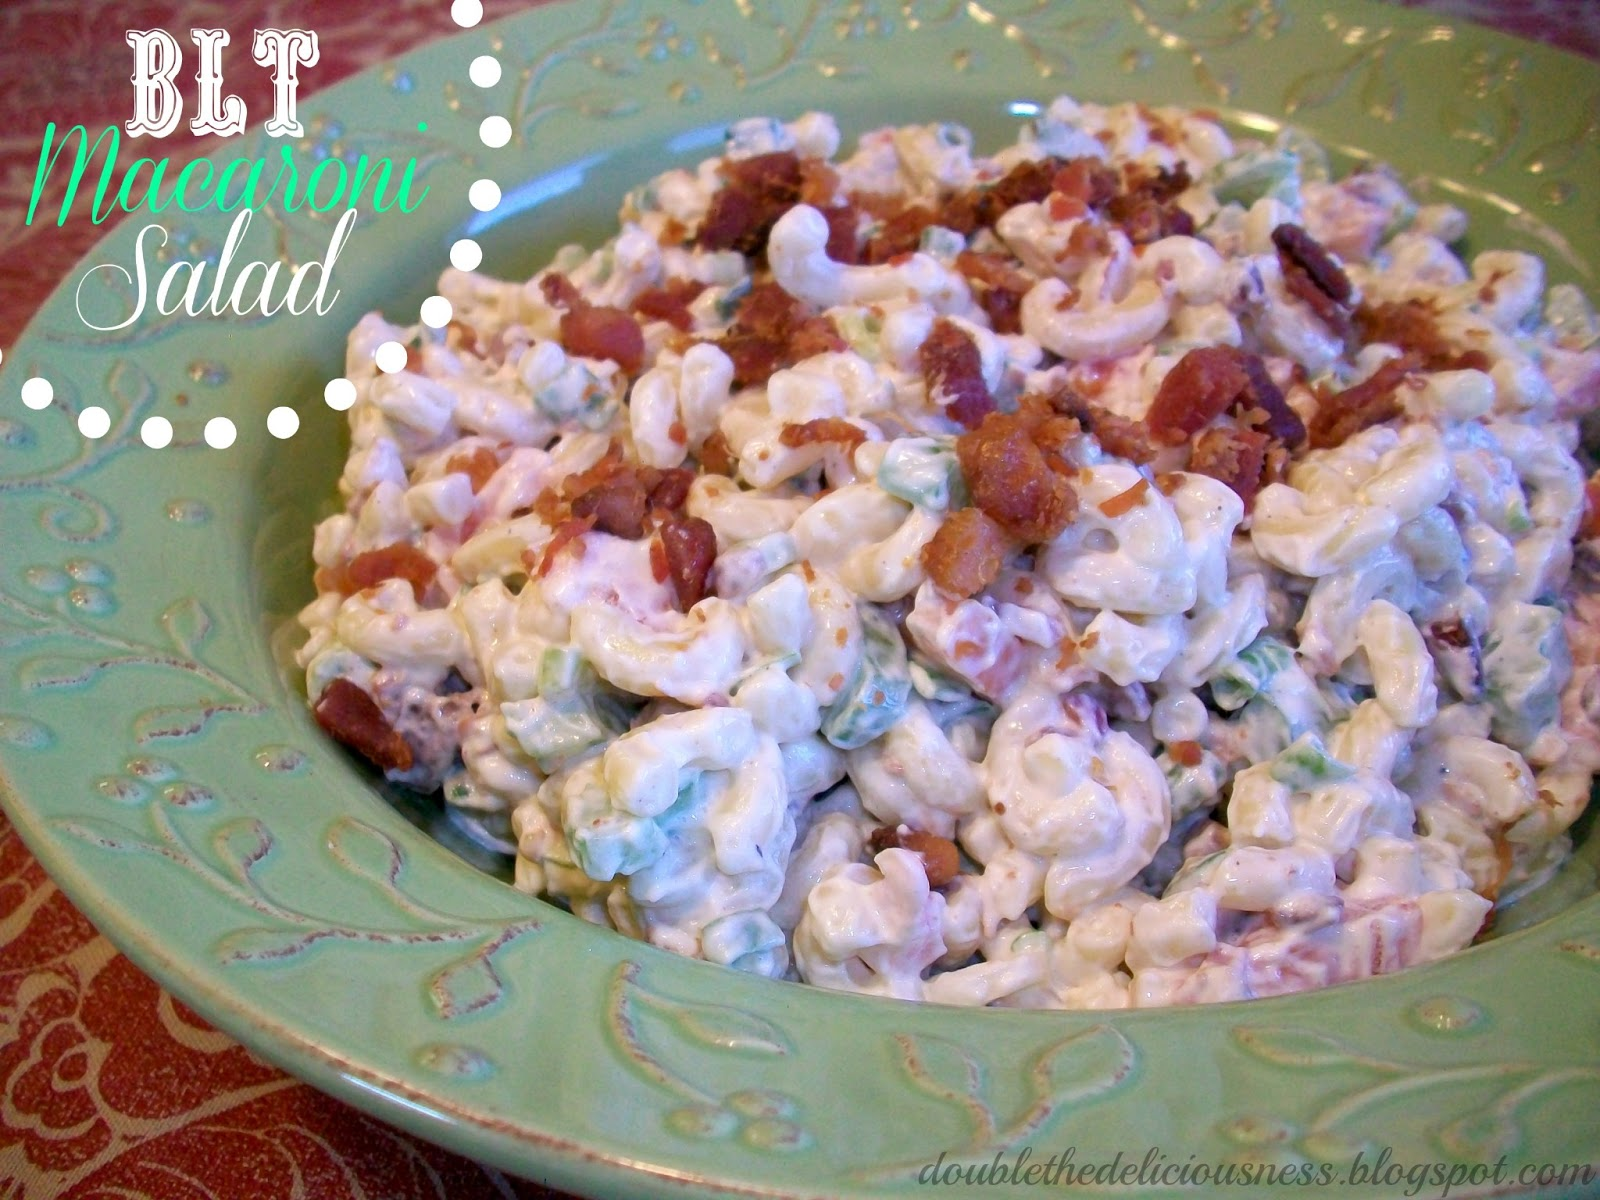 Double the Deliciousness: BLT Macaroni Salad